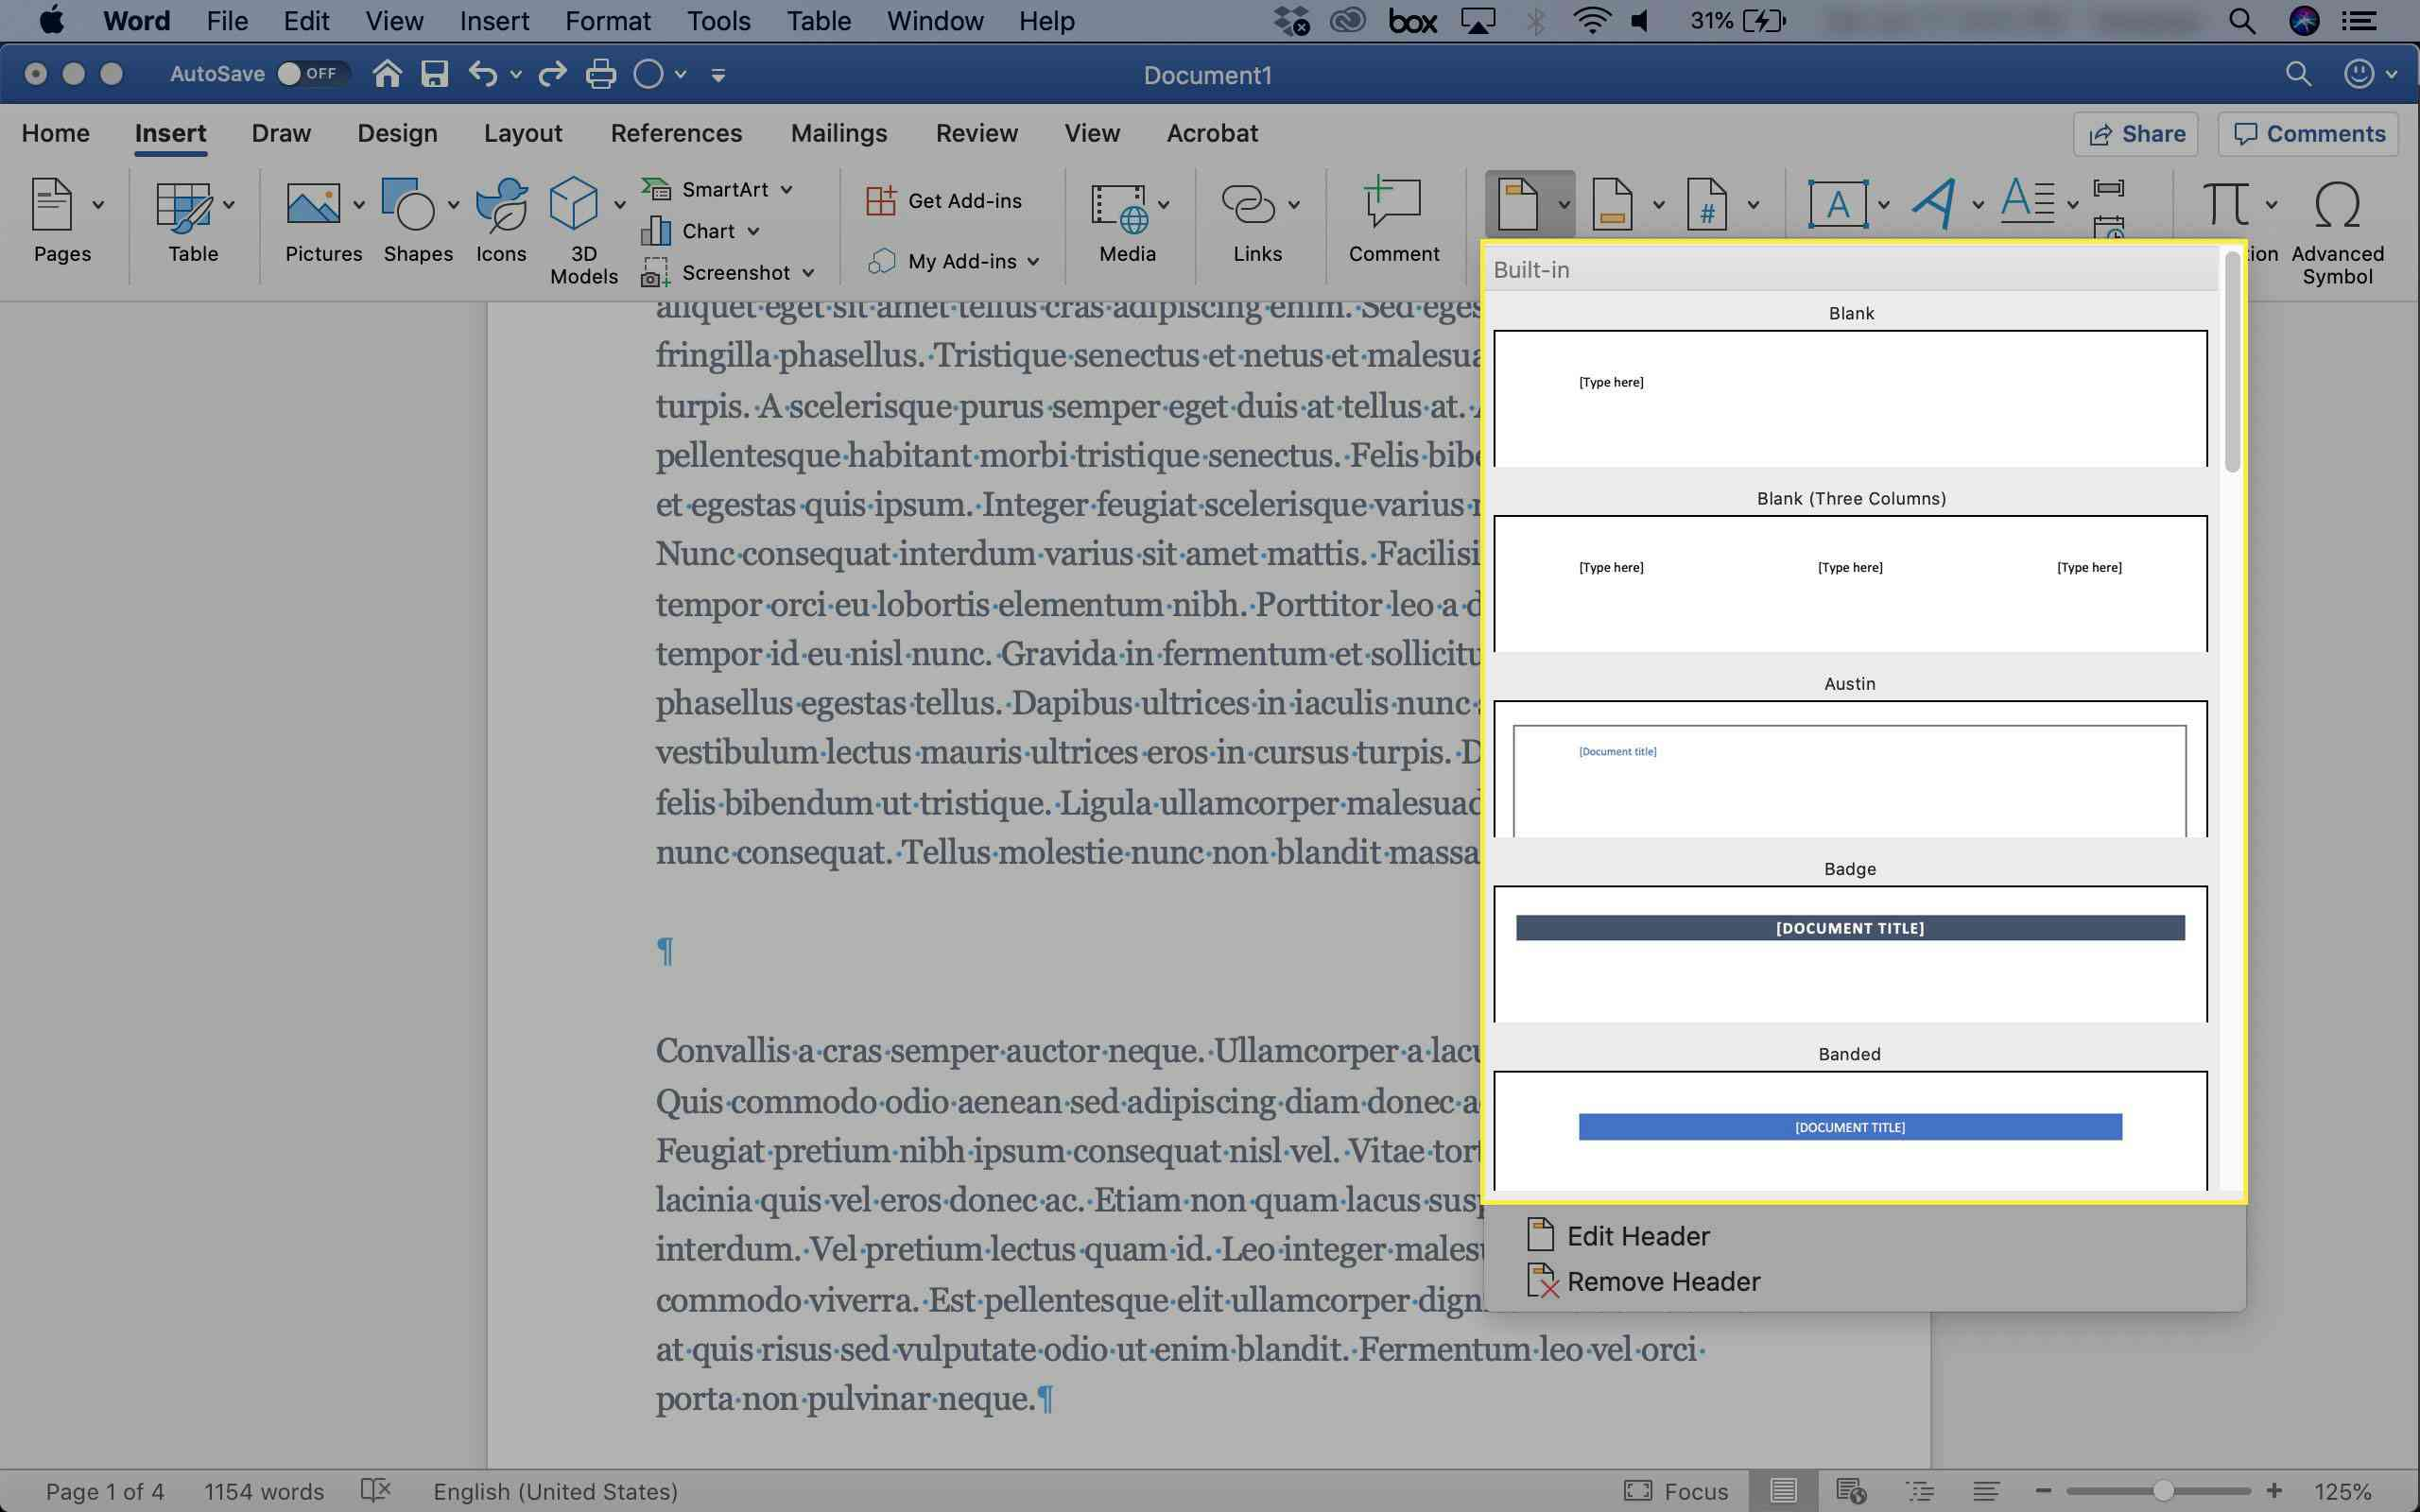 A screenshot of Word with the Header options highlighted